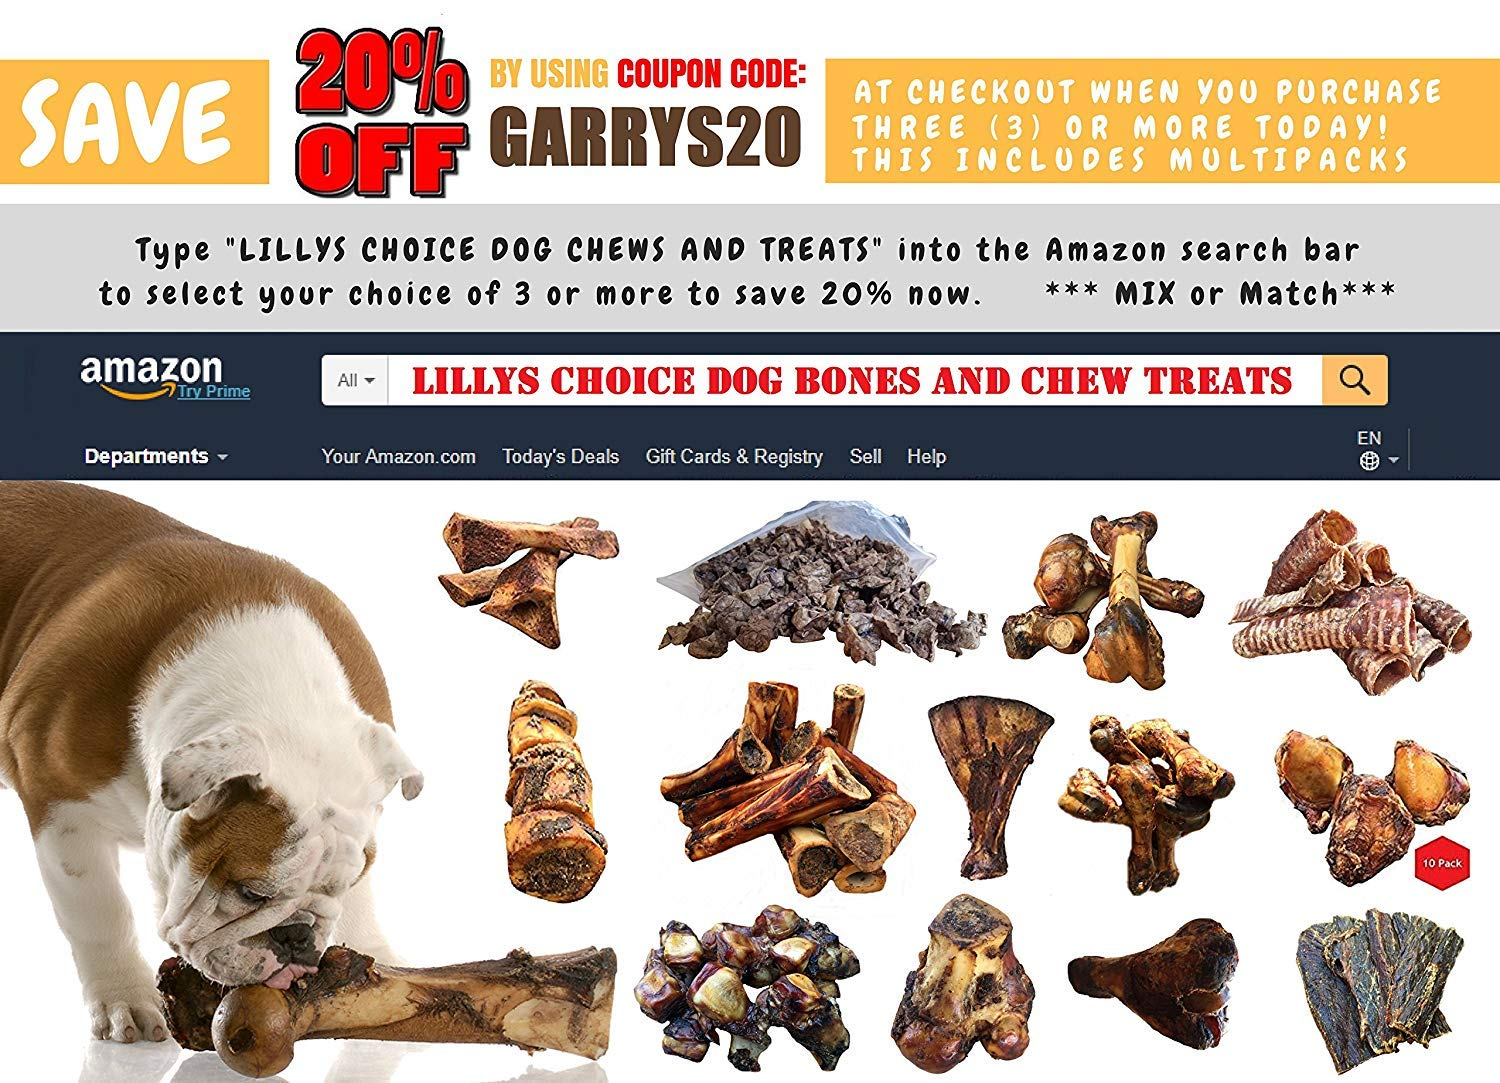 K9 Connoisseur Formerly Lillys Choice Dog Bones Made In USA For Small Breed Dogs All Natural Meaty Beef Chew Treat Bone Harvested From Grass Fed Cattle Best For Puppies Up To 15 Pounds